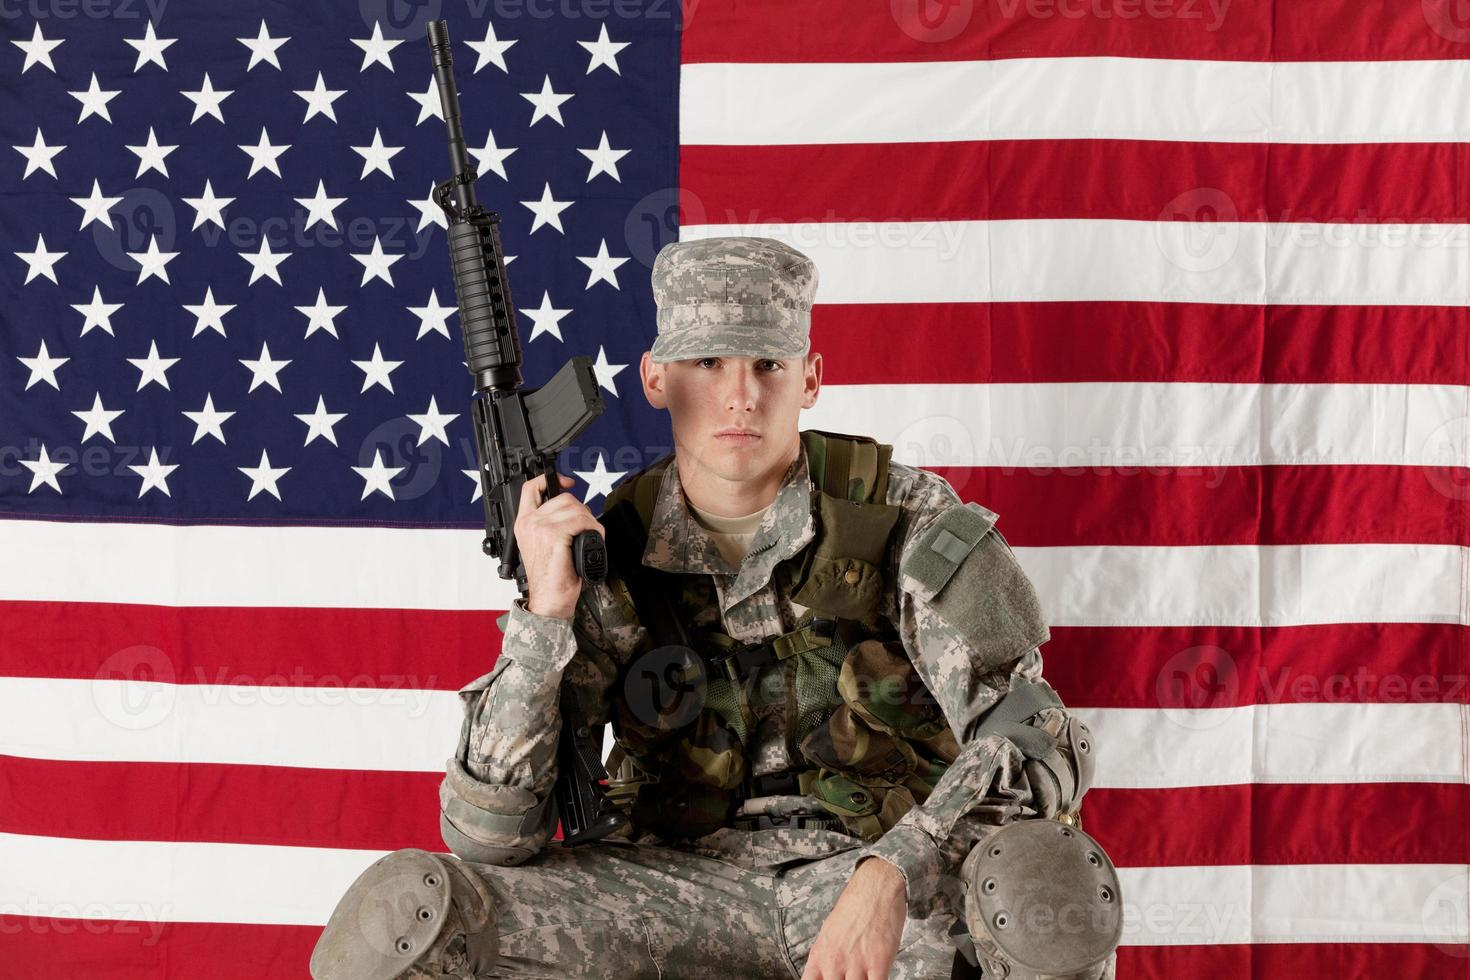 Army man sitting in front of an American flag photo